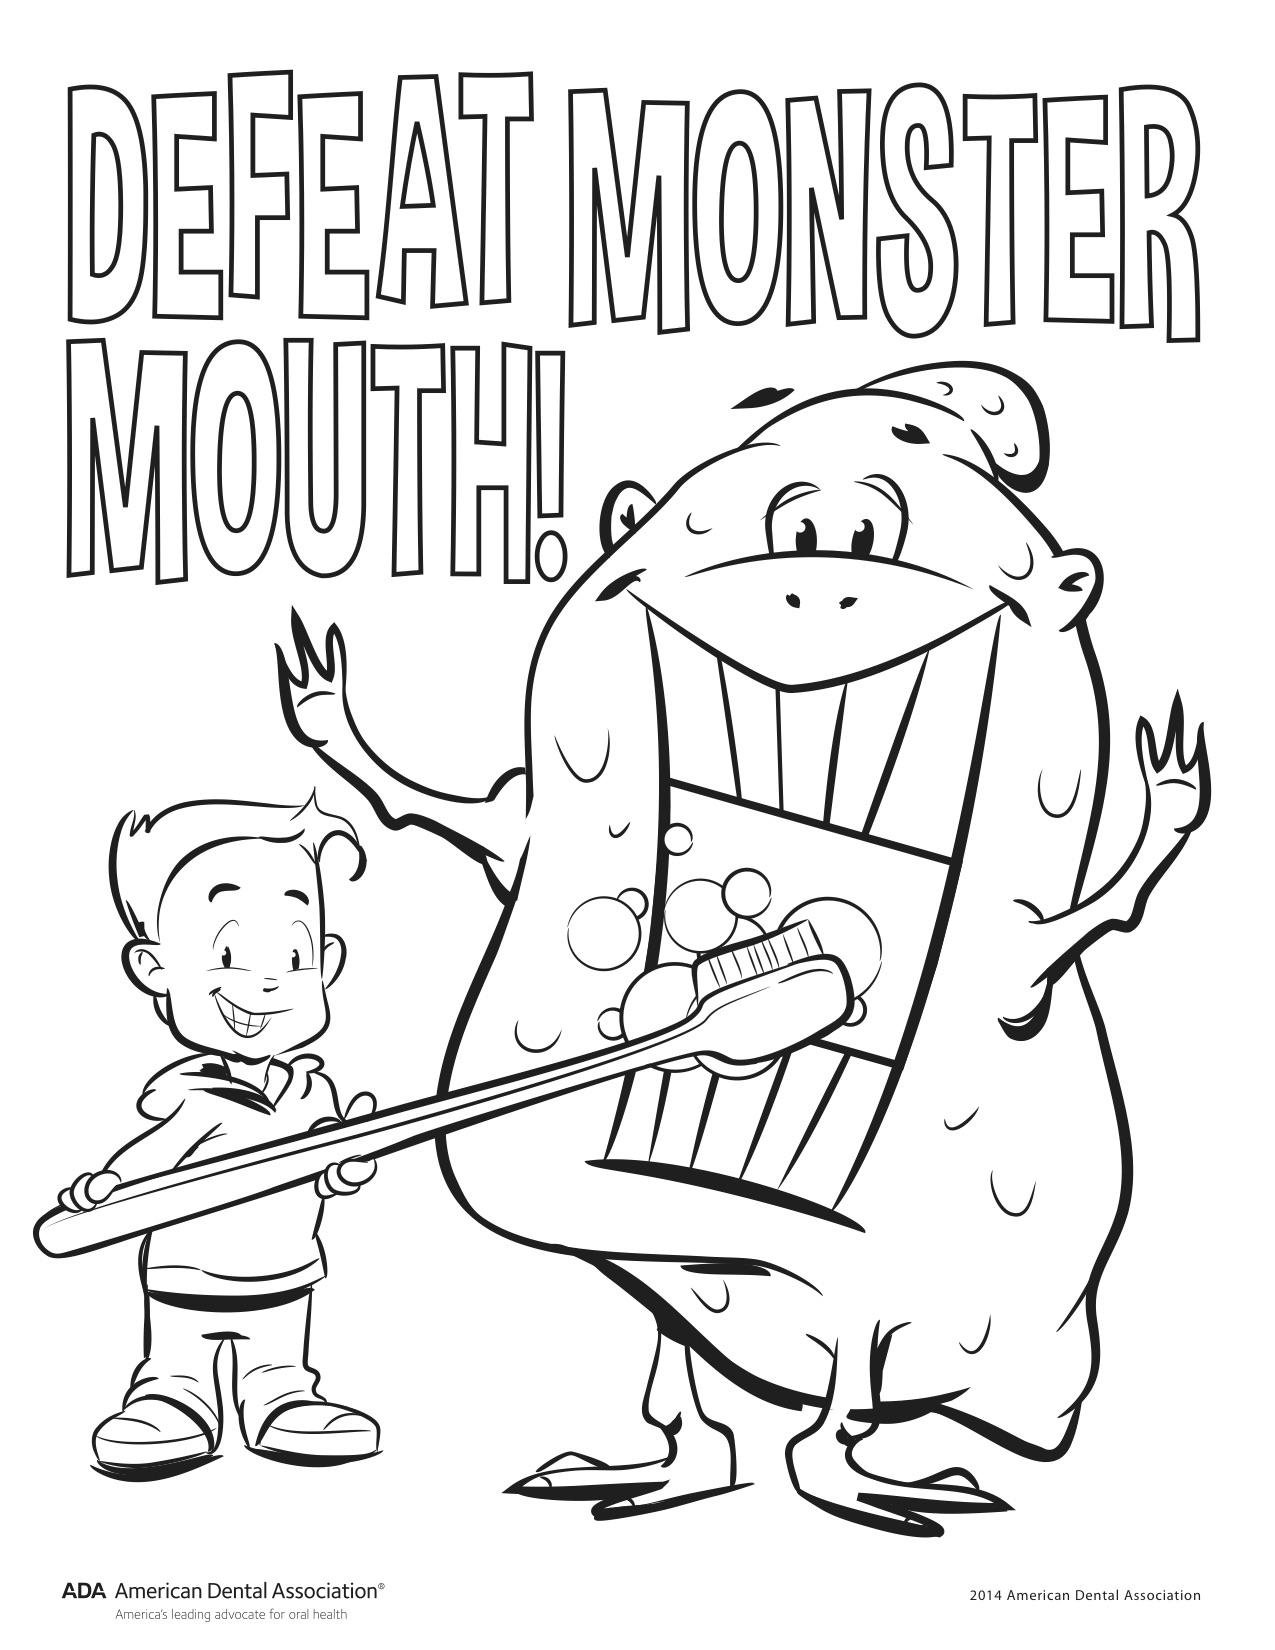 This childrensdentalhealthmonth defeat monster mouth by following the 2min2x rule brush your teeth 2 min 2x day